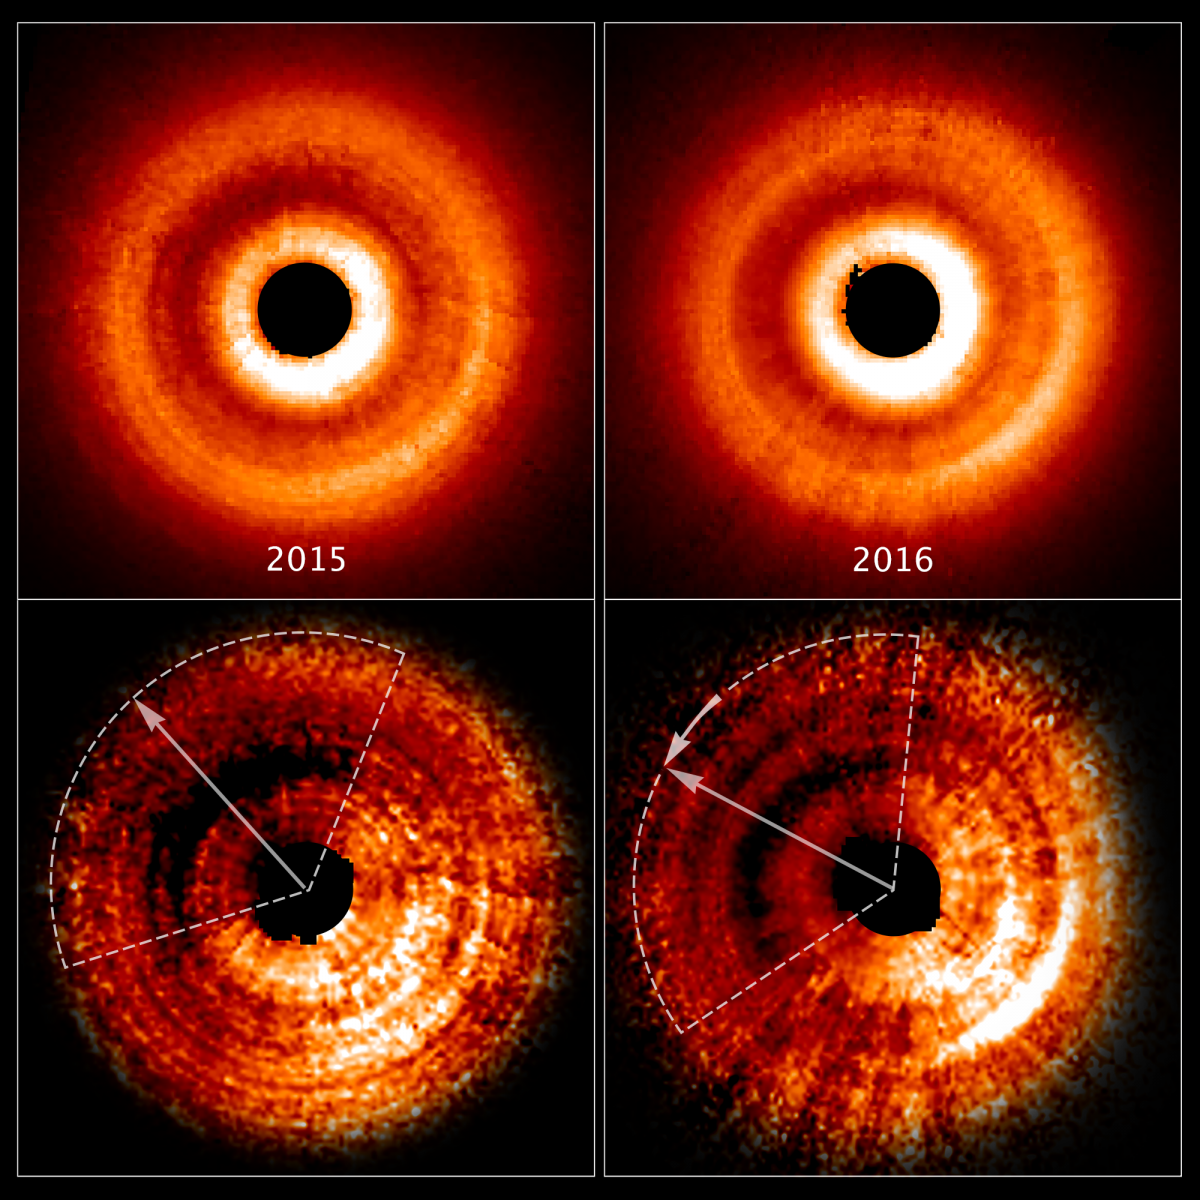 Hubble Space Telescope Detects Shadow In A Young Star's Circumstellar Disk Possibly Caused By Orbiting Planet